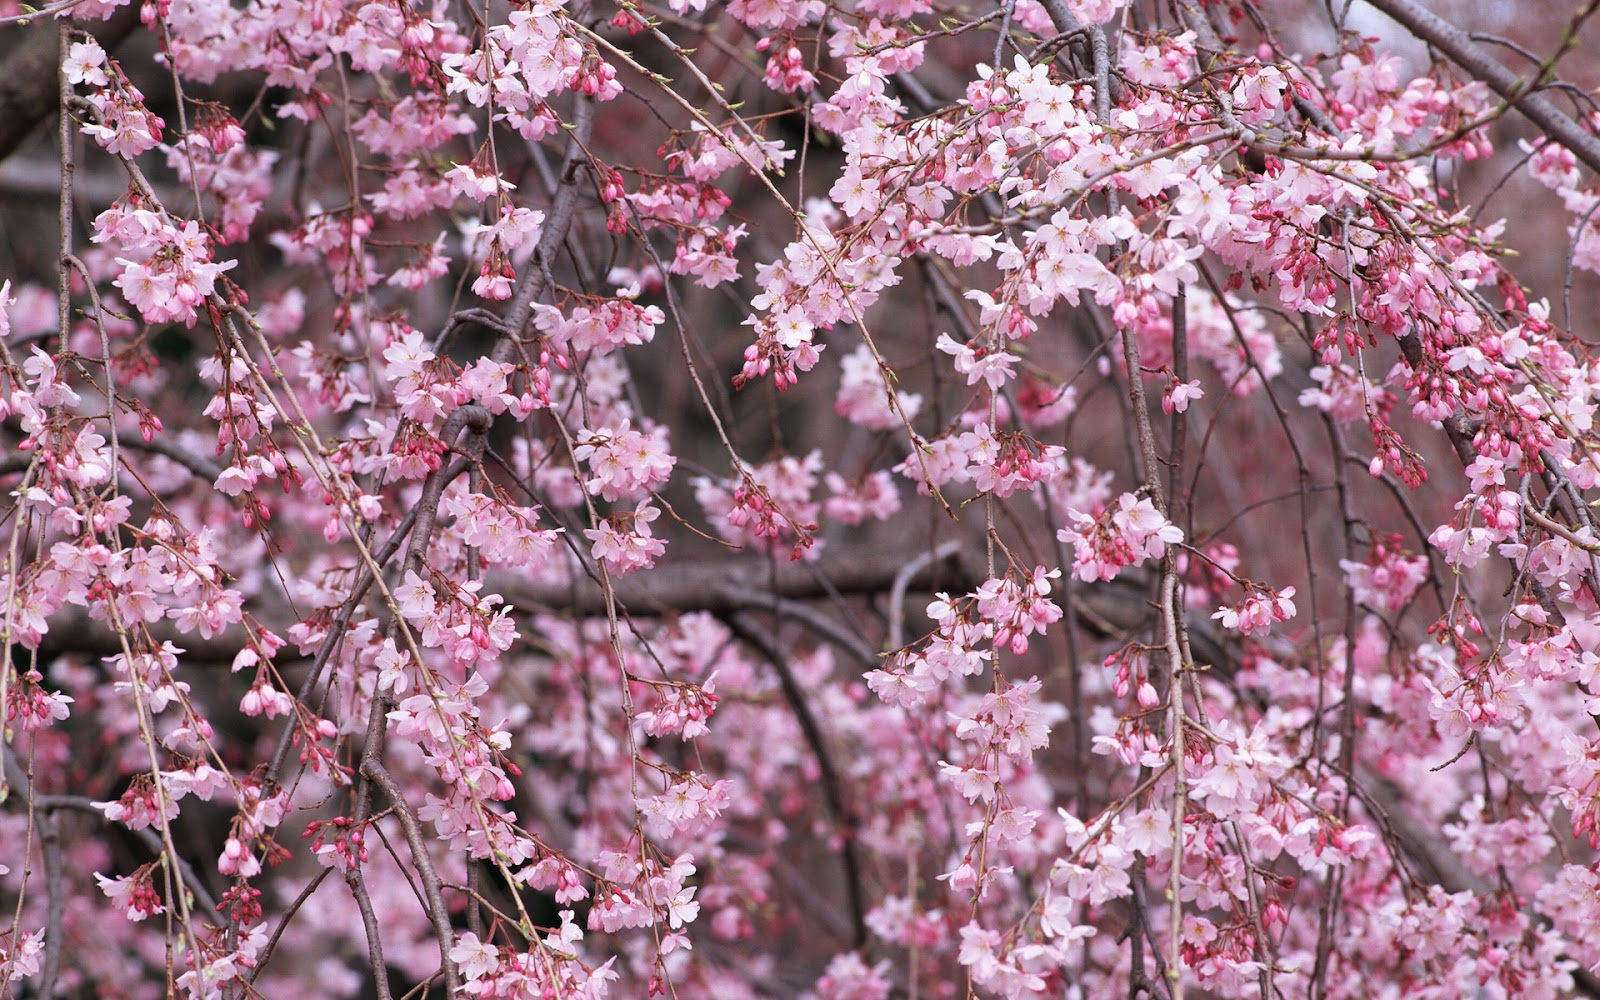 Wallpapers cherry blossom Cherry blossom pictures